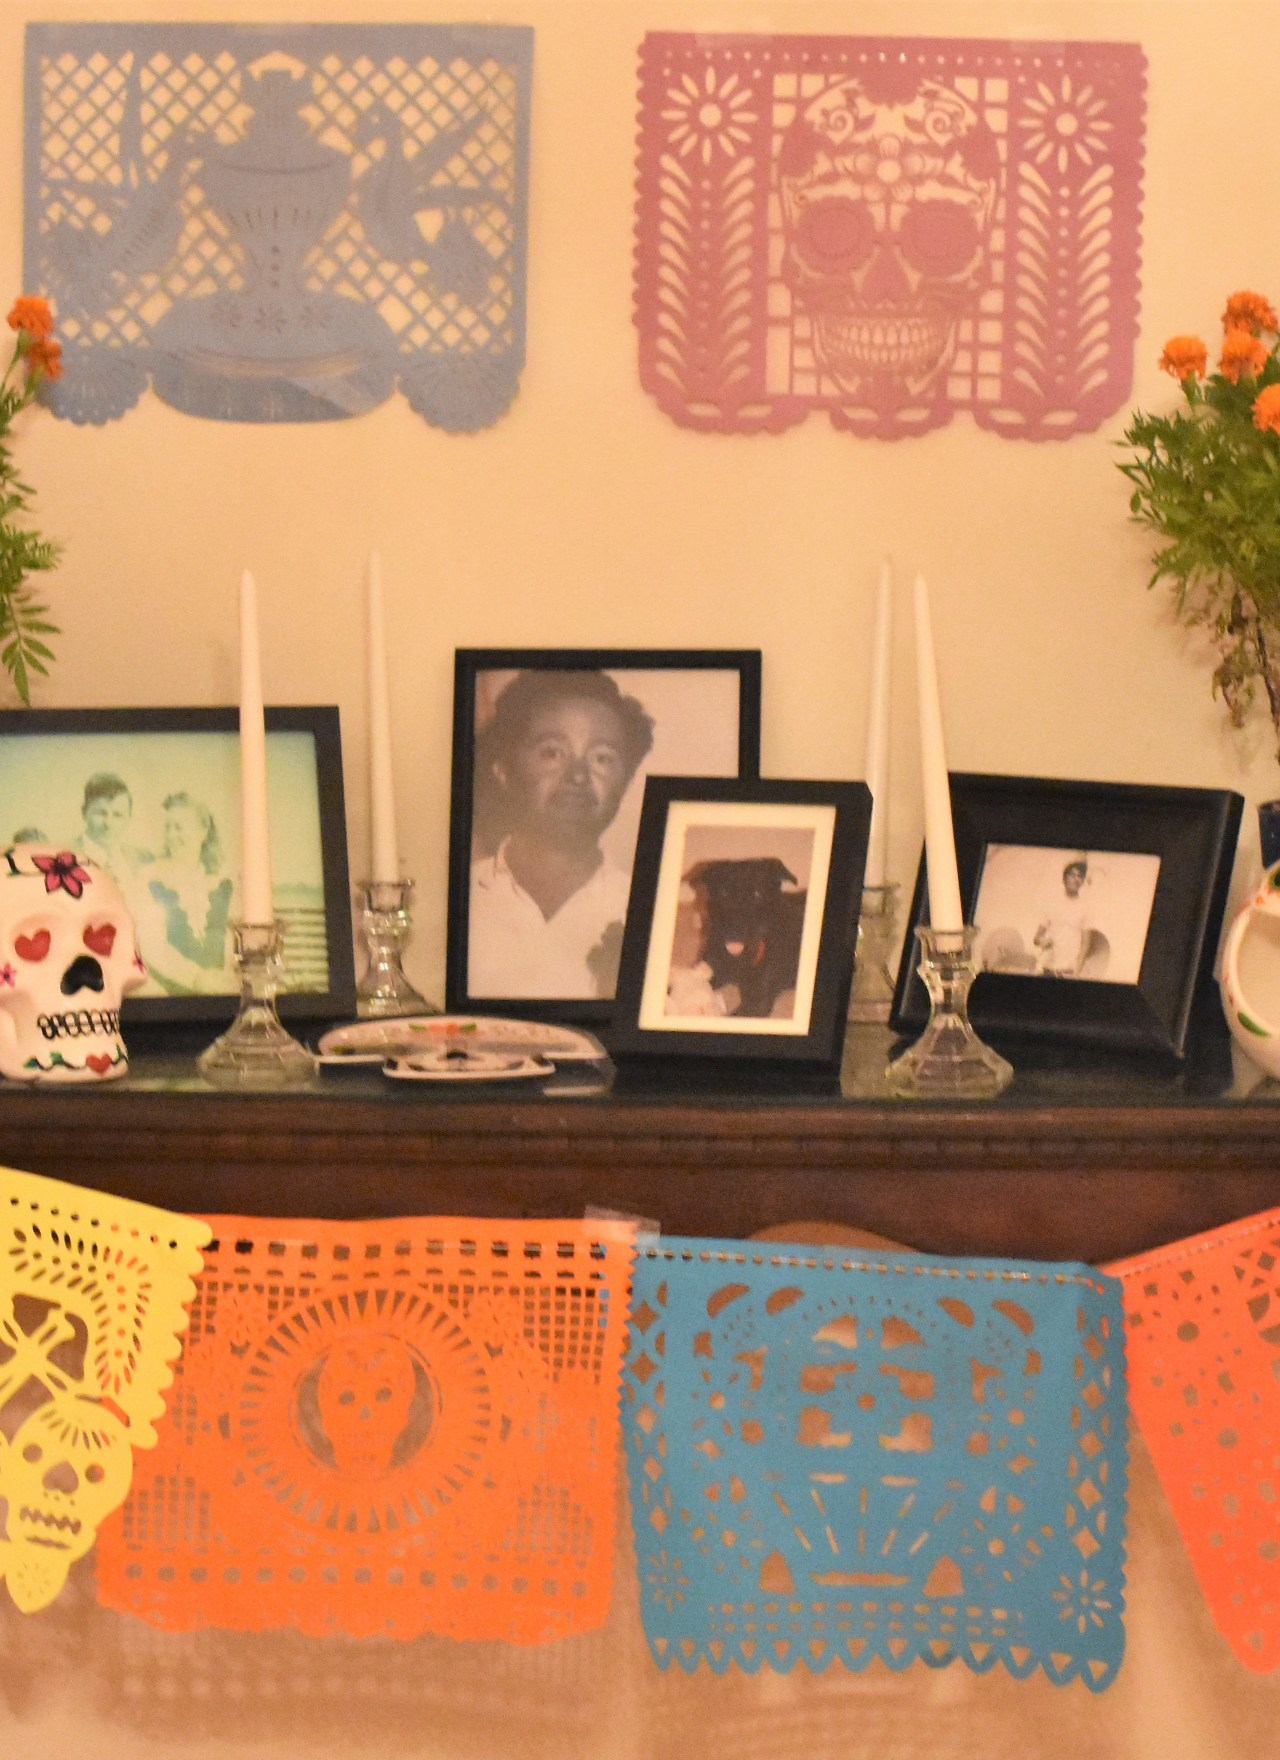 Dia De Los Muertos: Our Family's First Ofrenda + DIY Sugar Skull